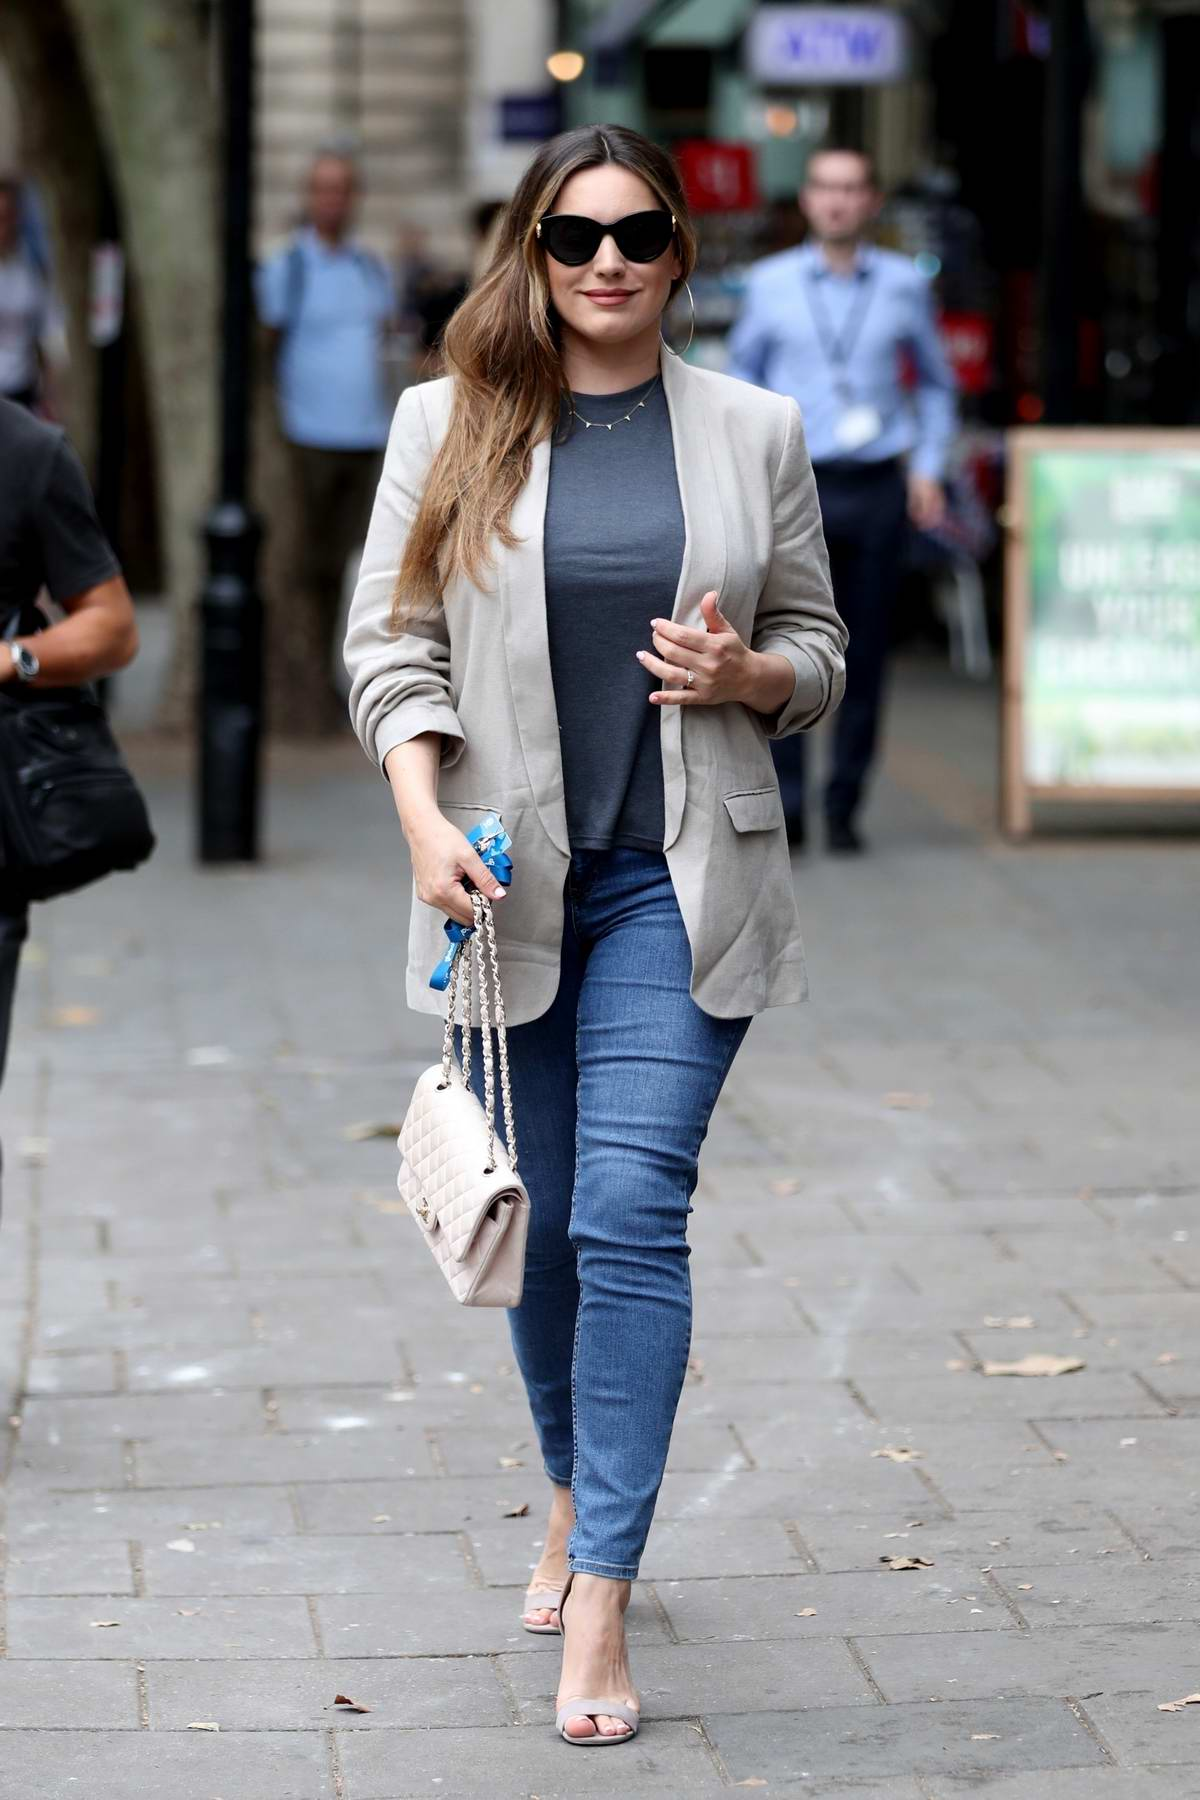 Kelly Brook looks chic in a blazer as she arrives at Global Offices in London, UK